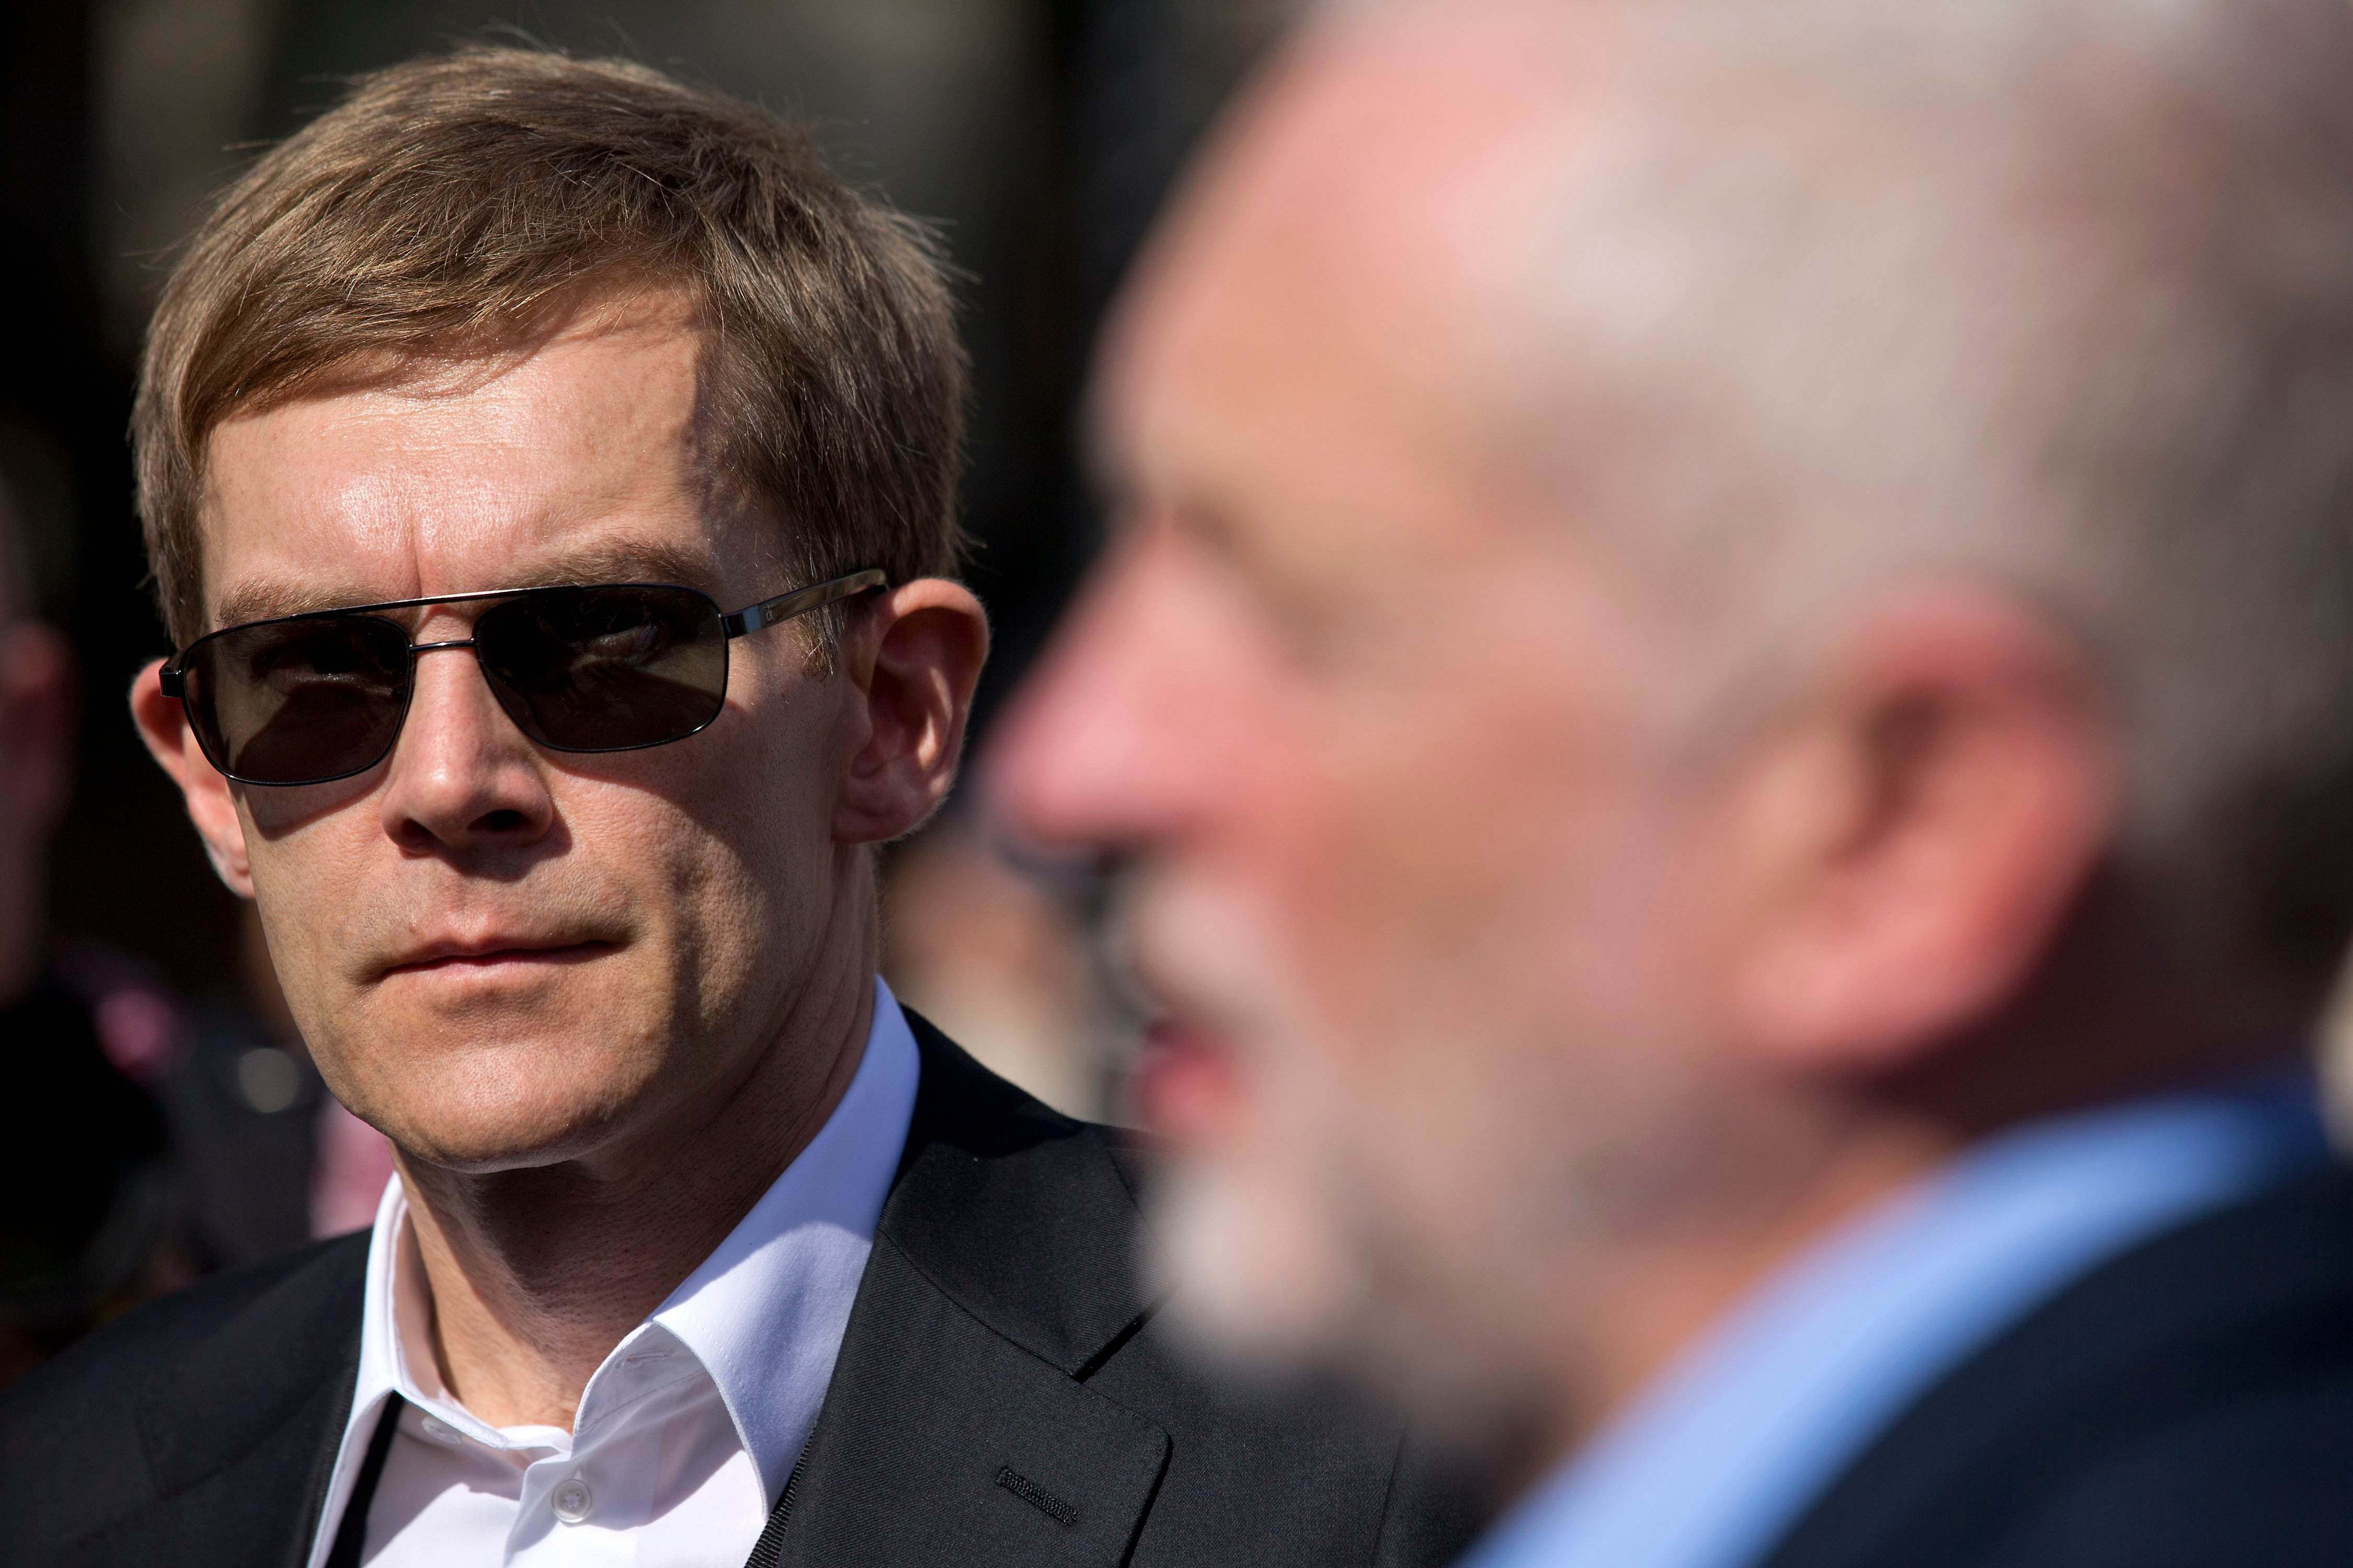 Seumas Milne (left), a former Guardian journalist, is Corbyn's media adviser and right hand man (AFP)